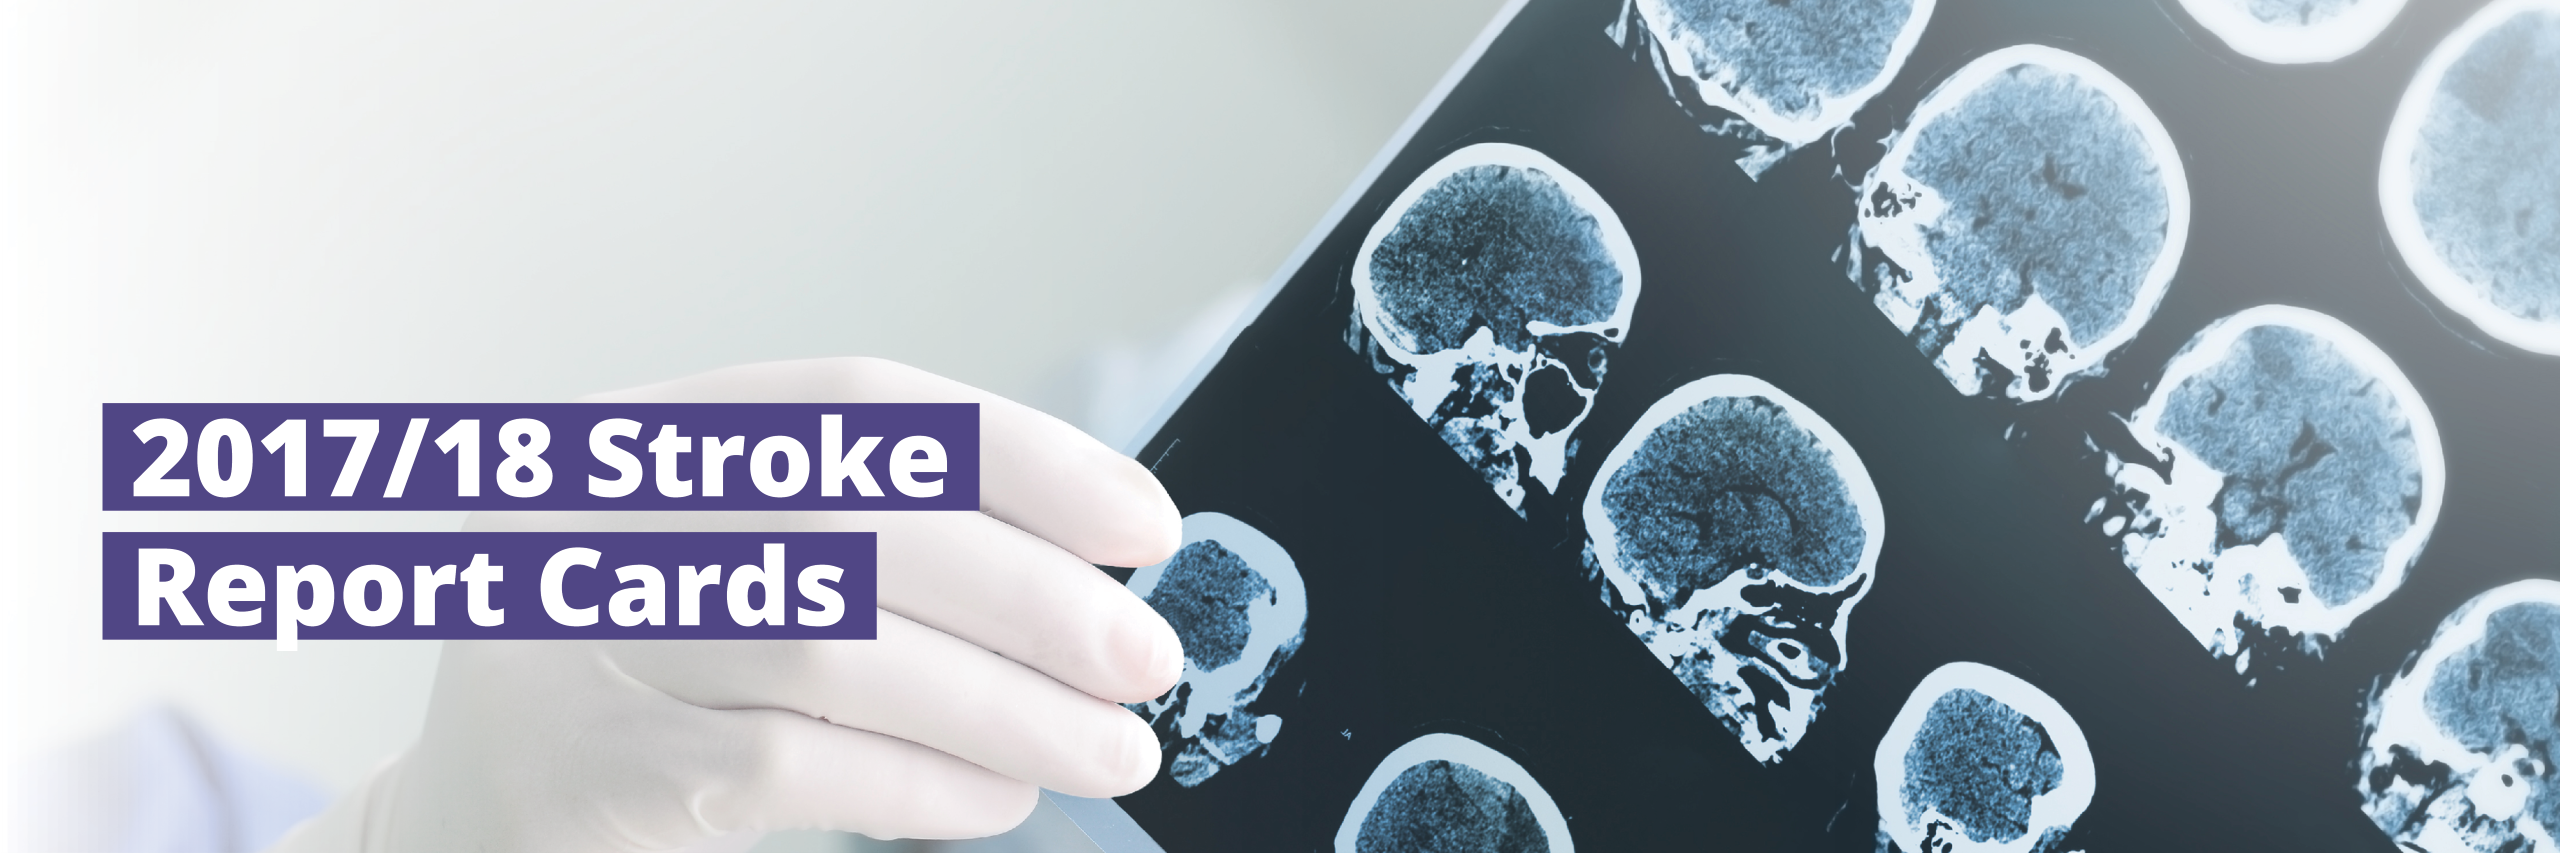 Banner image of a healthcare provider holding up an x-ray of multiple brain scans indicating the 2017/18 Stroke Report Cards are now available.